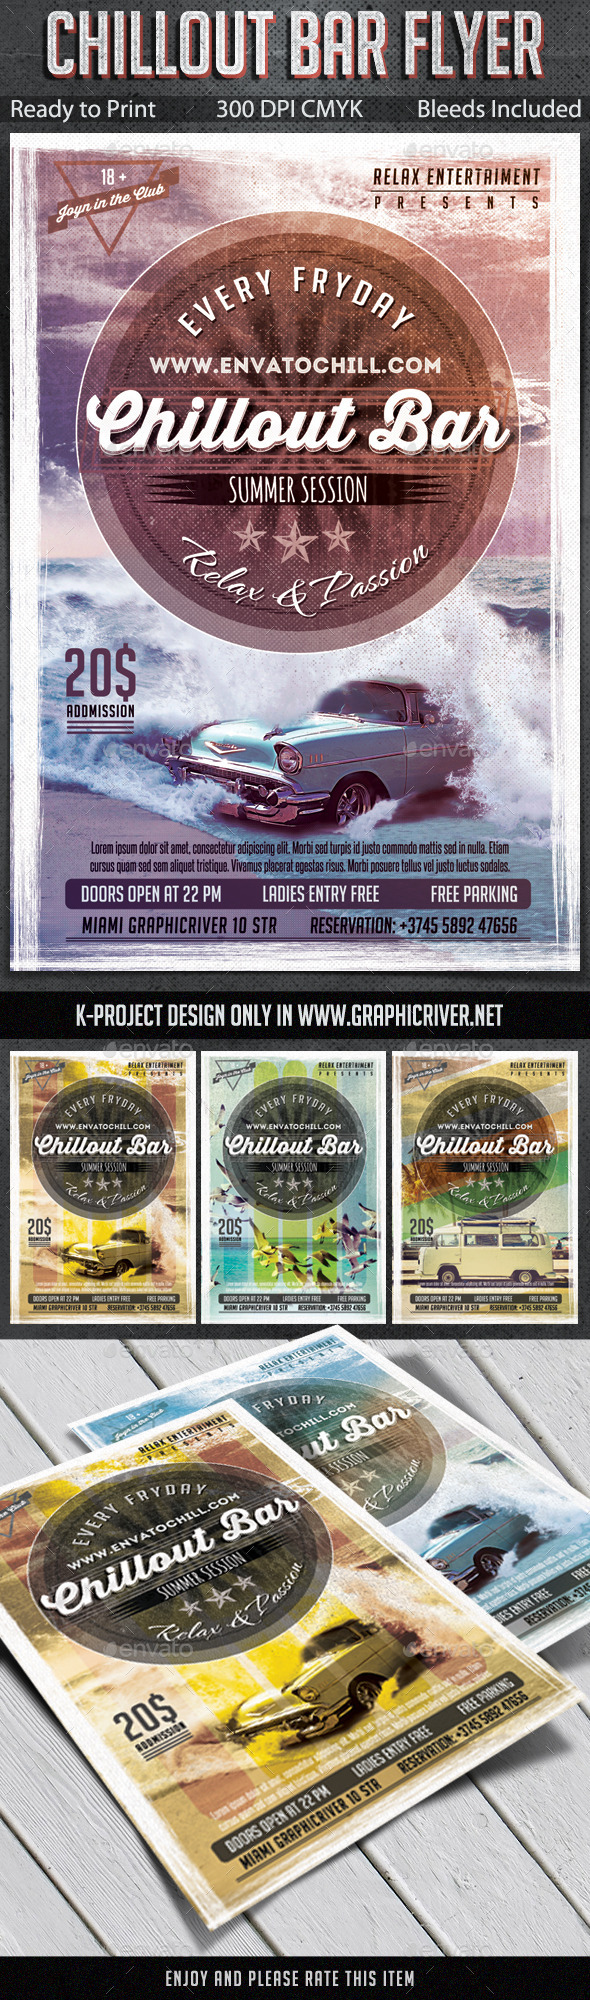 Chillout Bar Flyer - Clubs & Parties Events